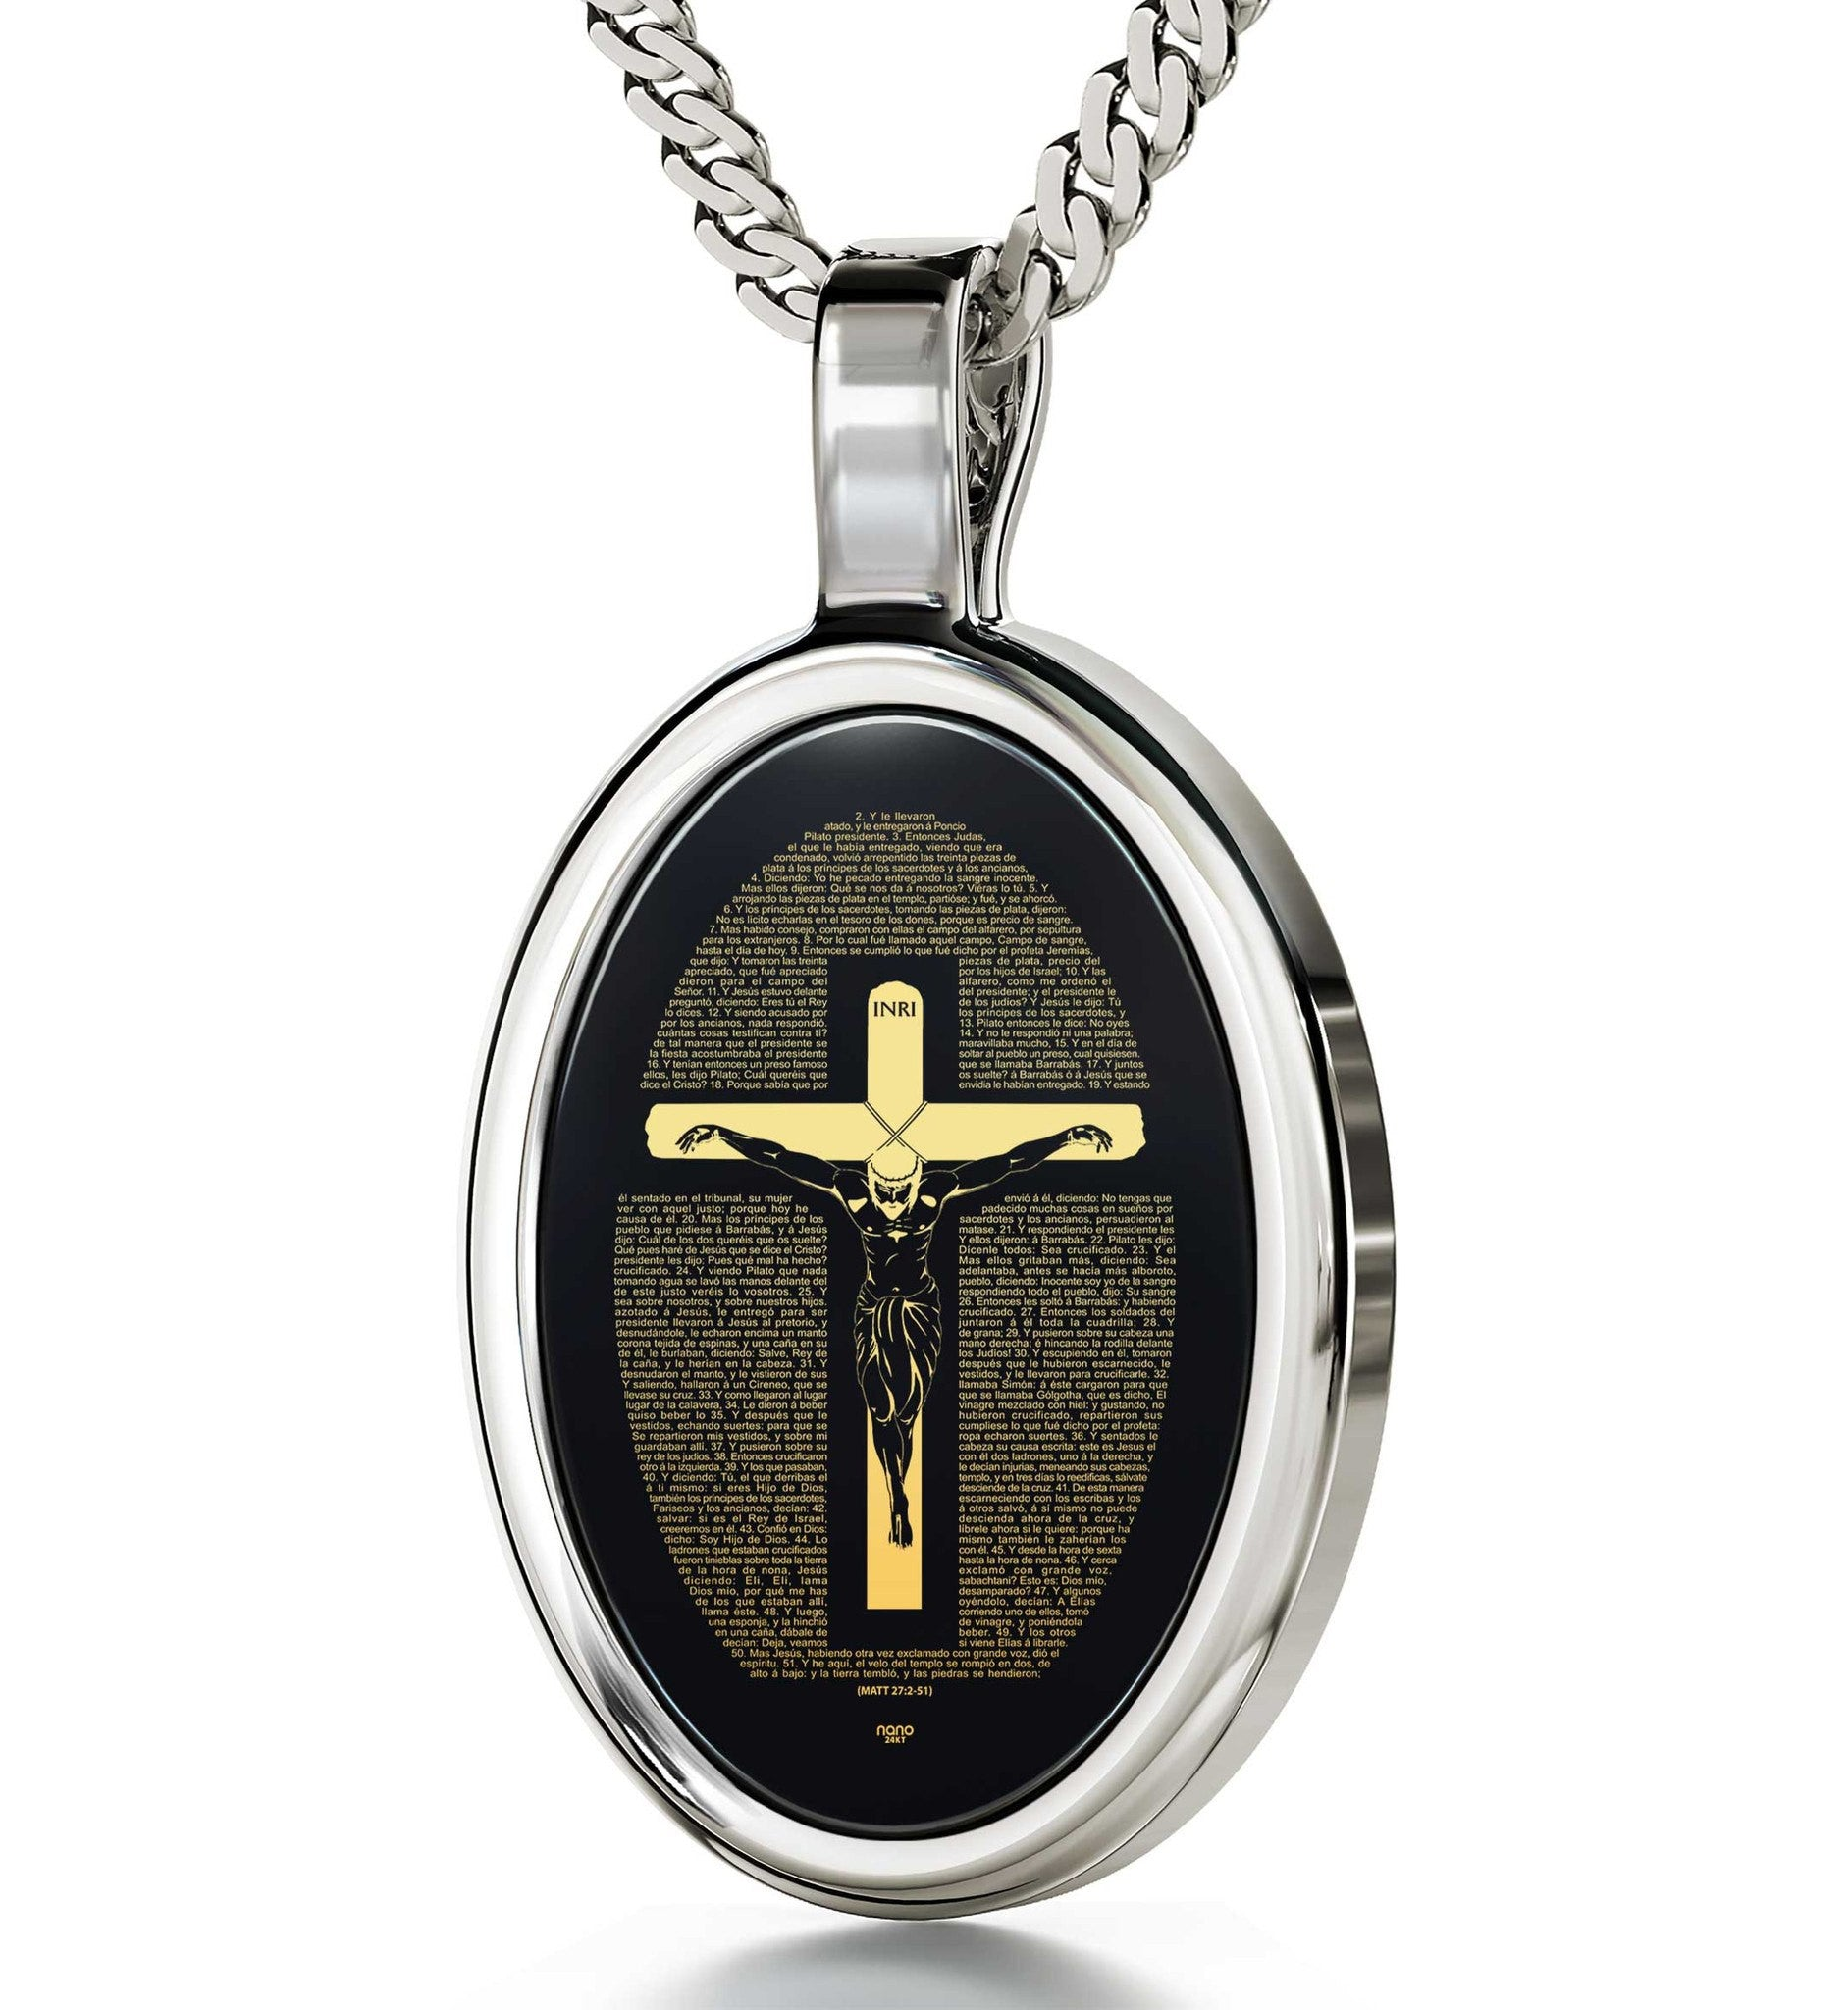 """Matthew 27:2-51EngravedinSpanish, 30th BirthdayPresentIdeas,GiftsforGraduates, Black Stone Necklace, Nano Jewelry"""